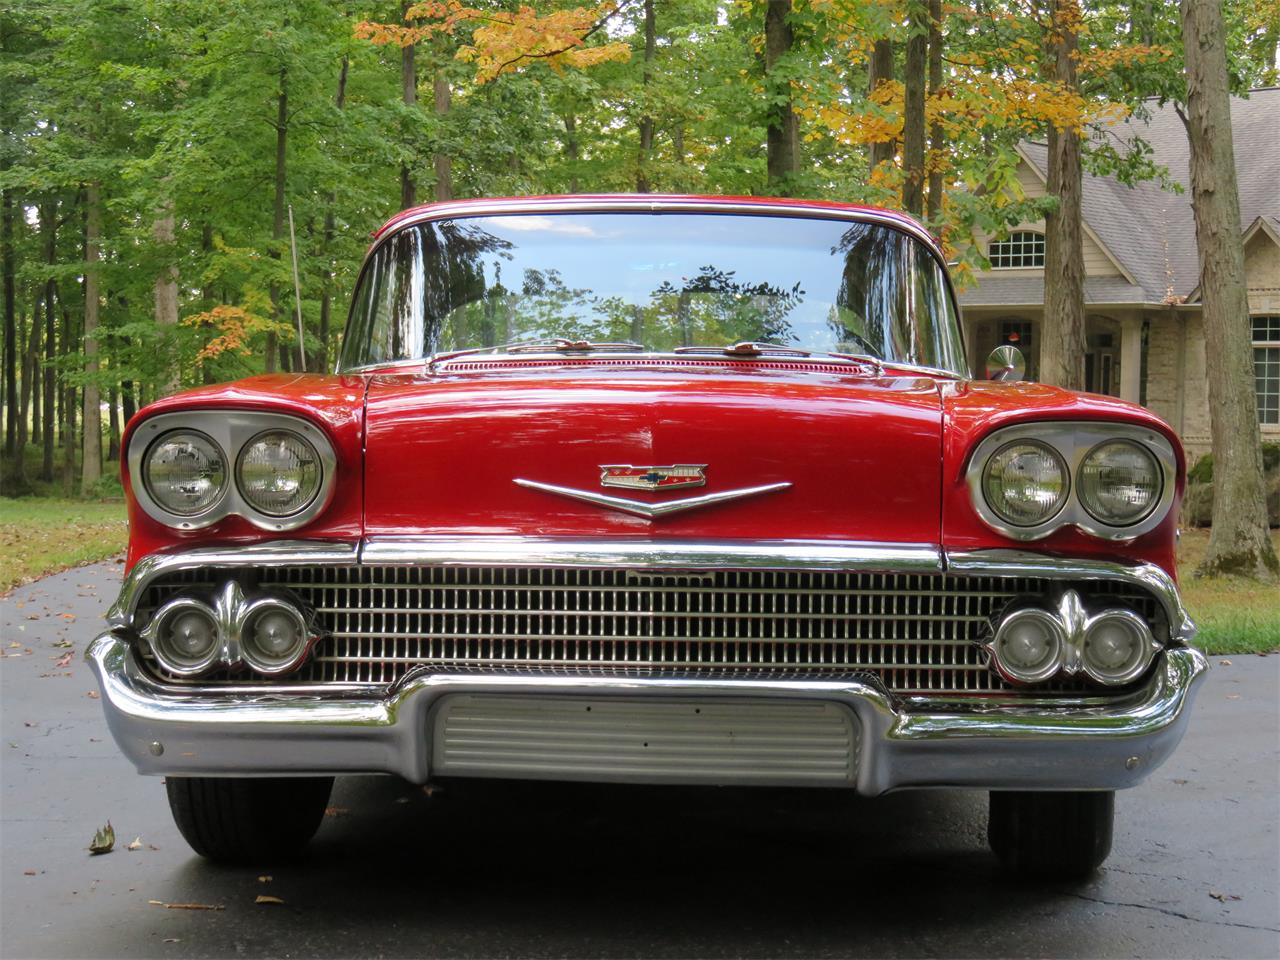 Large Picture of '58 Chevrolet Biscayne located in Indiana Offered by Earlywine Auctions - N5K4